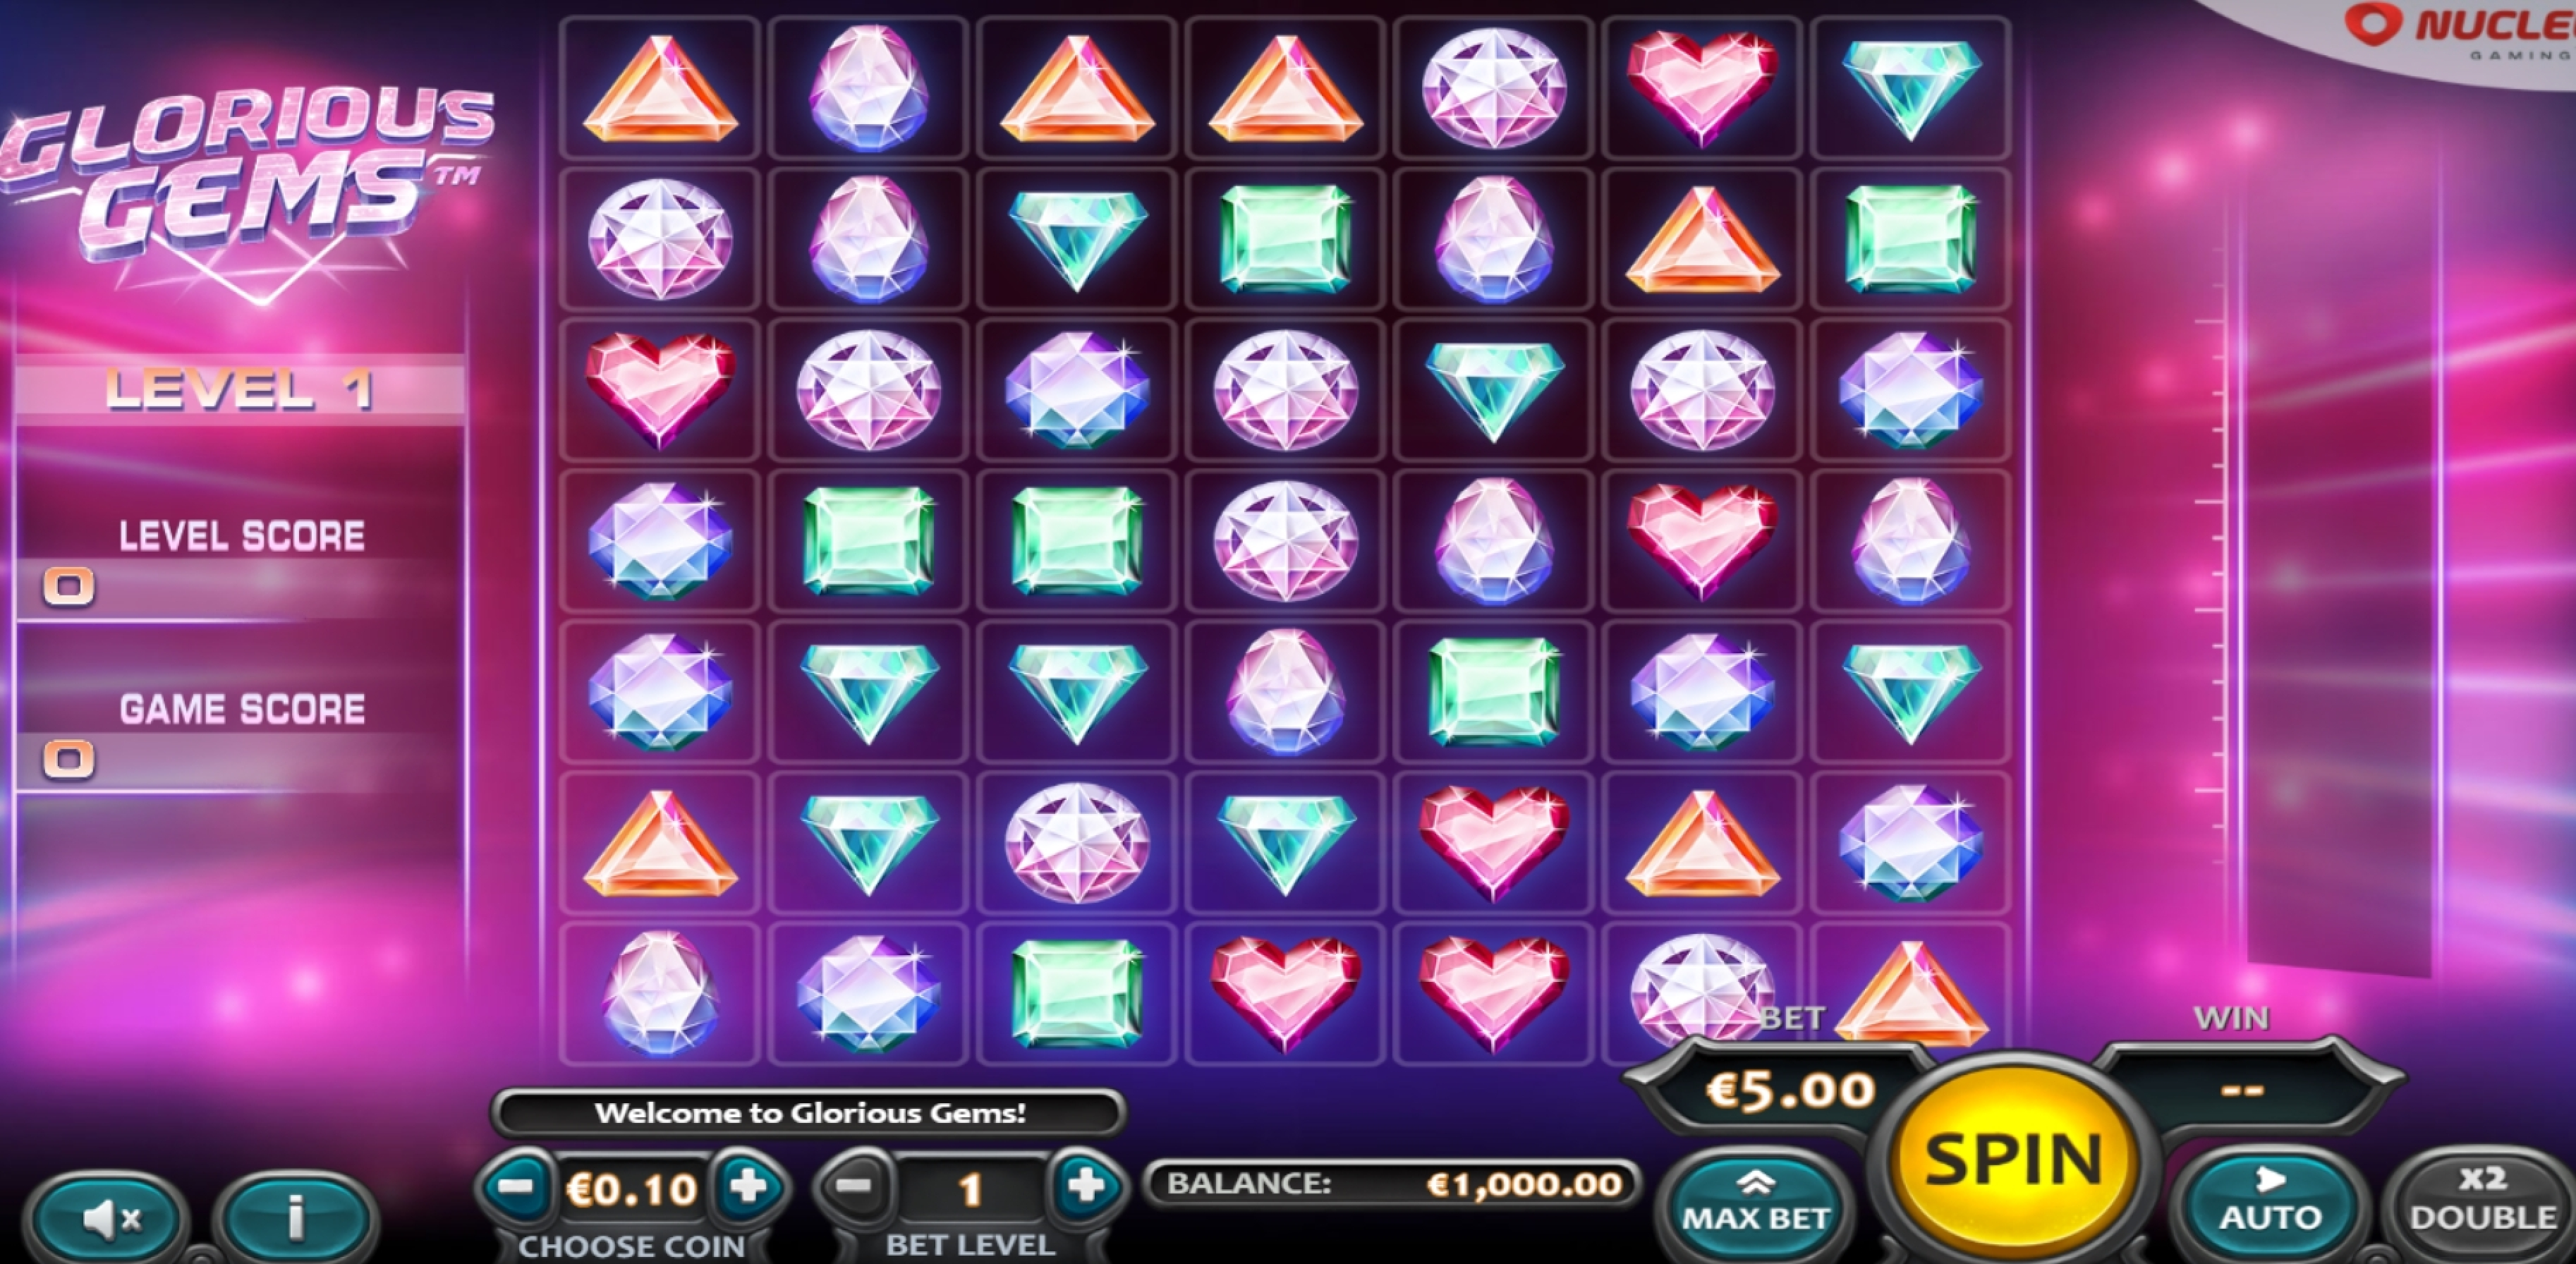 Reels in Glorious Gems Slot Game by Nucleus Gaming